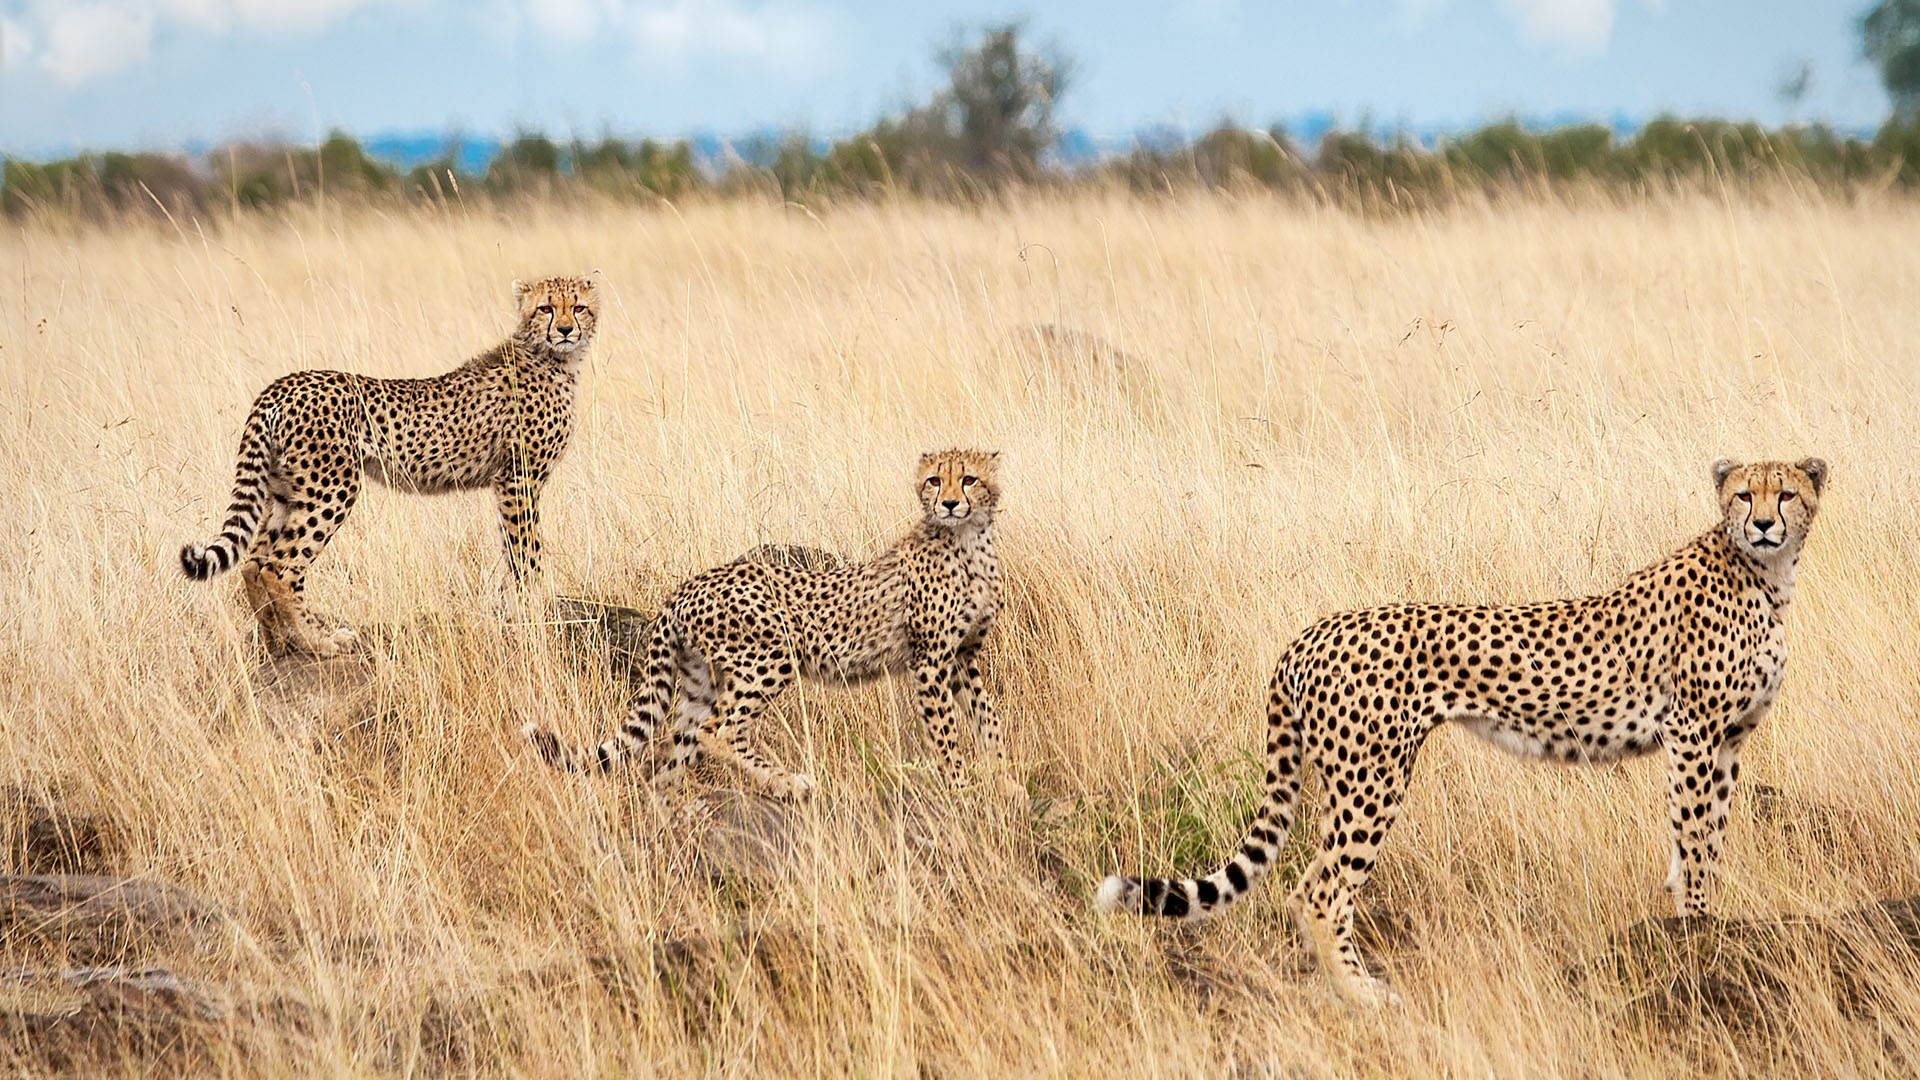 Cheetahs At Savanna